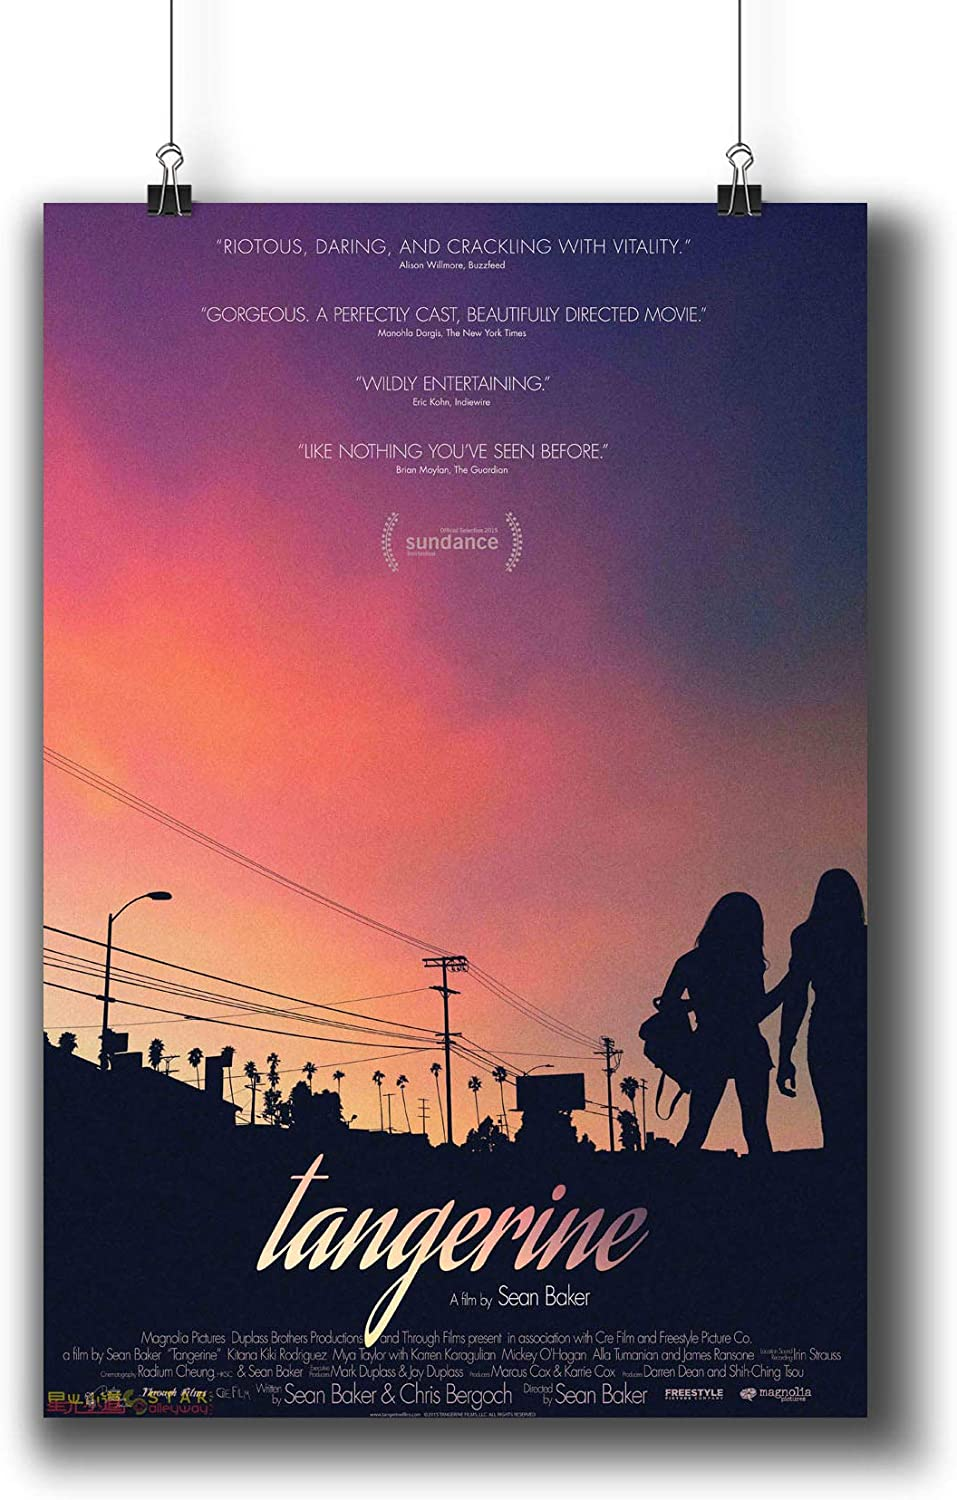 TANGERINE POSTER A4 A3 A2 A1 CINEMA FILM MOVIE LARGE FORMAT